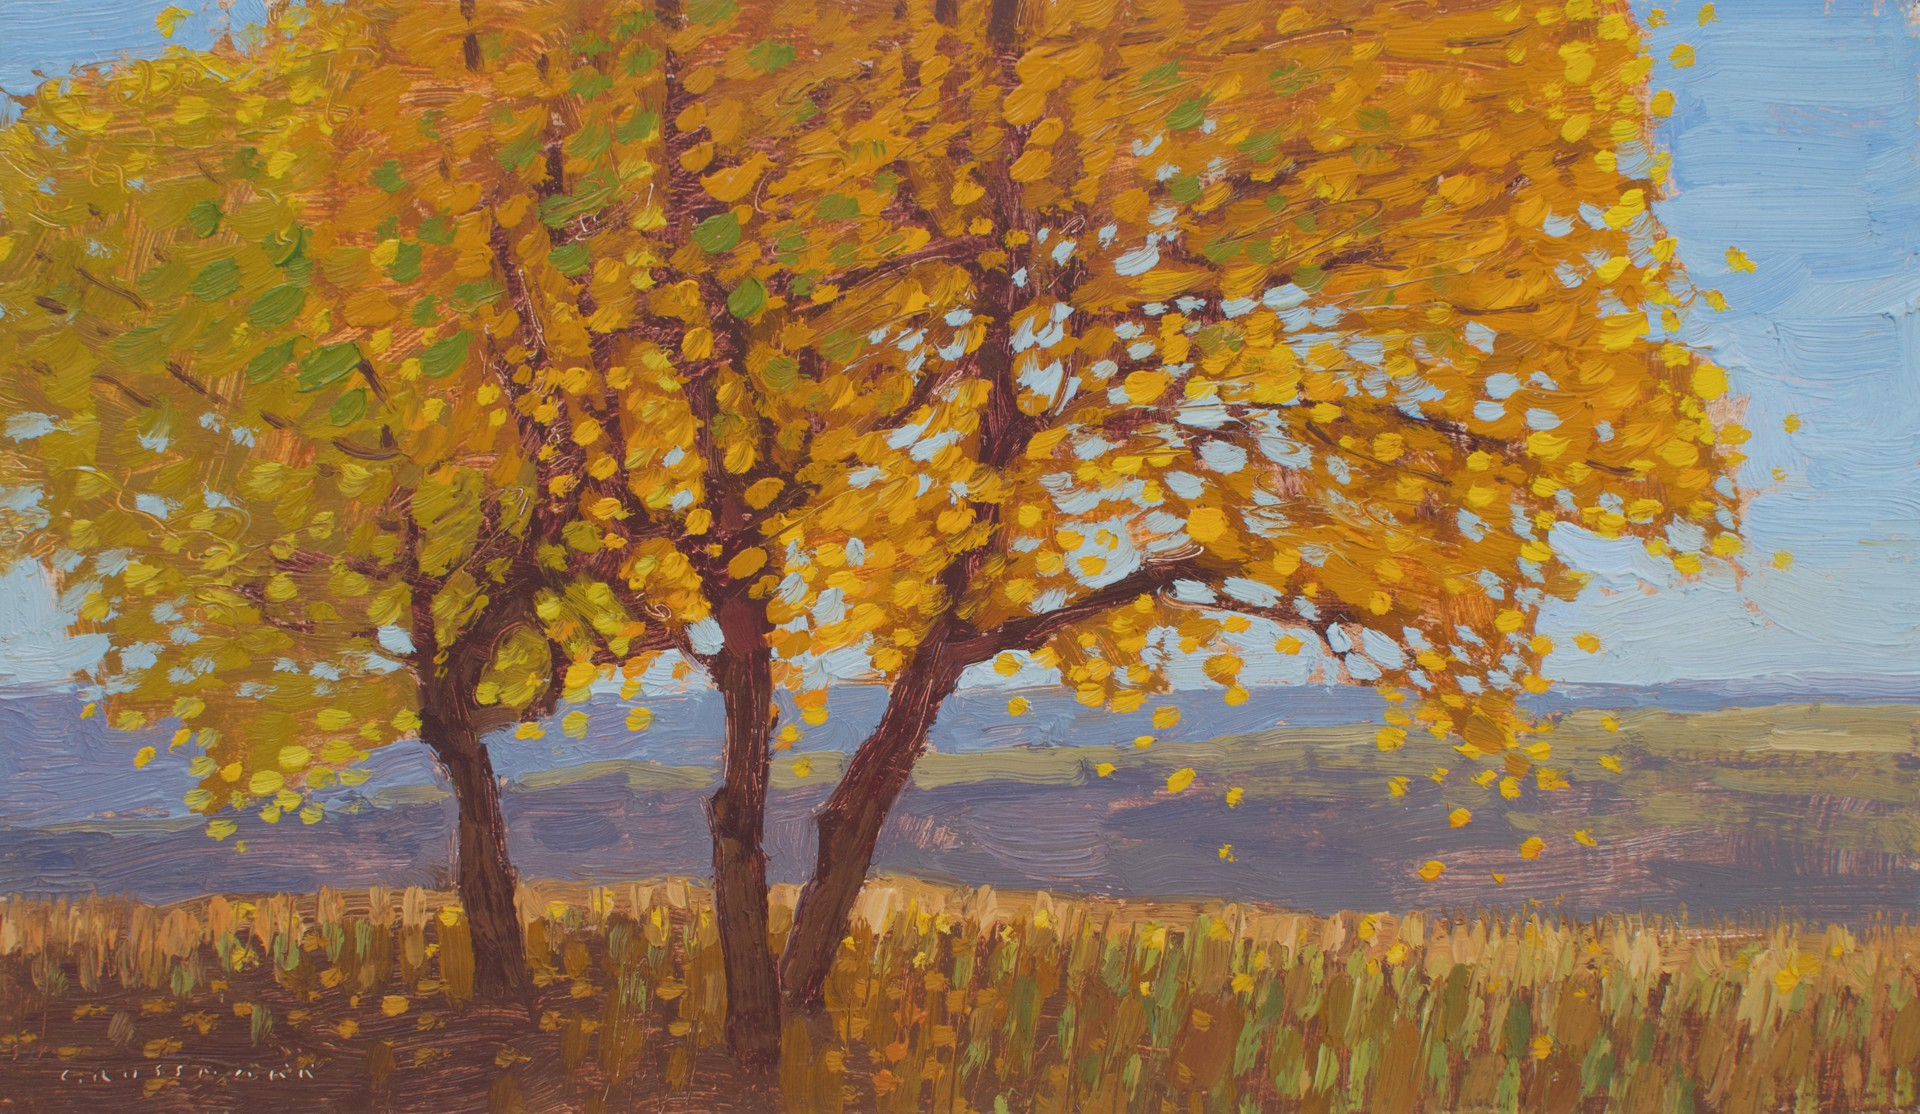 Cottonwoods with Changing Autumn Leaves  by David Grossmann